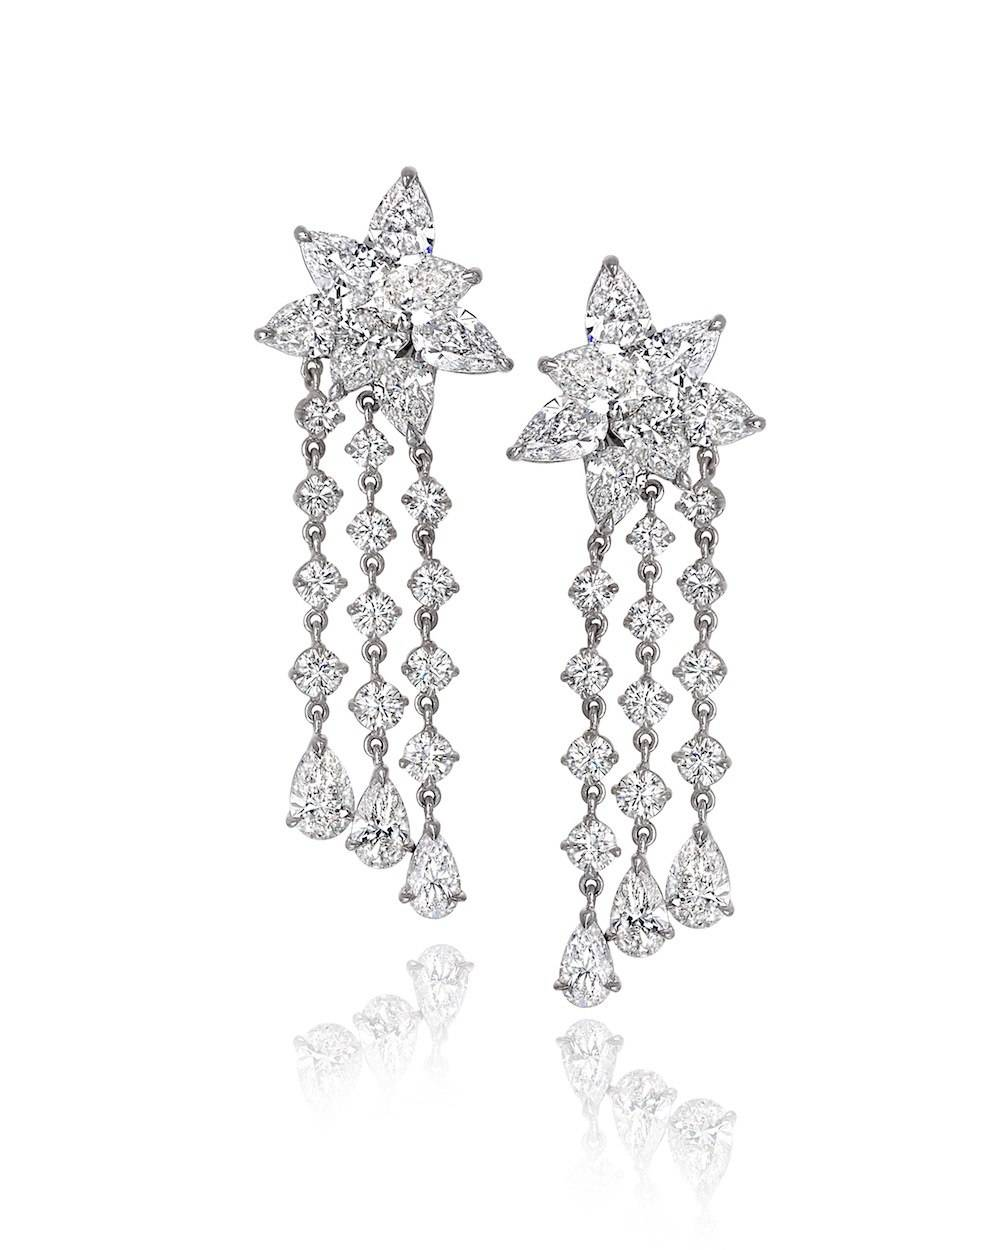 Earrings Worn By Penelope Cruz